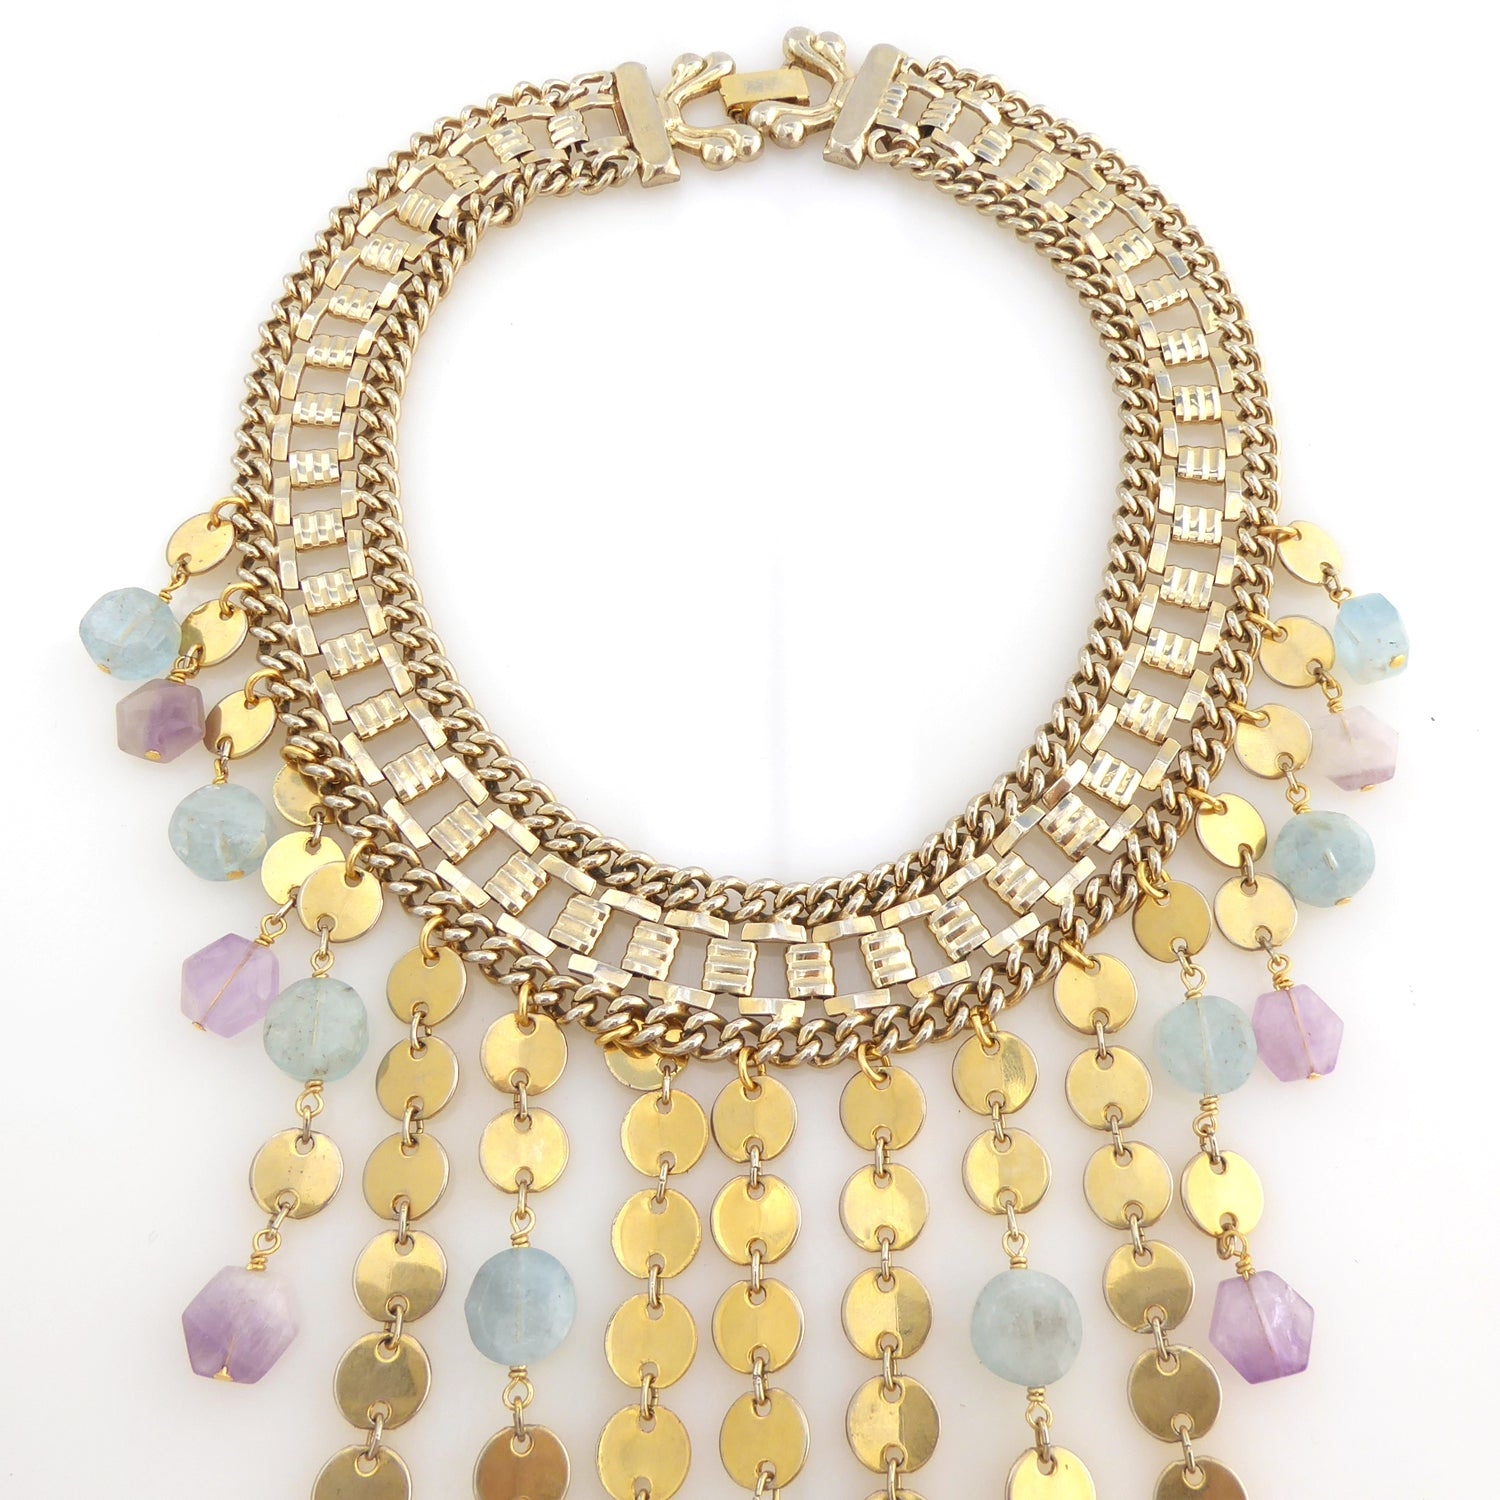 Carmeline aquamarine and amethyst necklace by Jenny Dayco 4